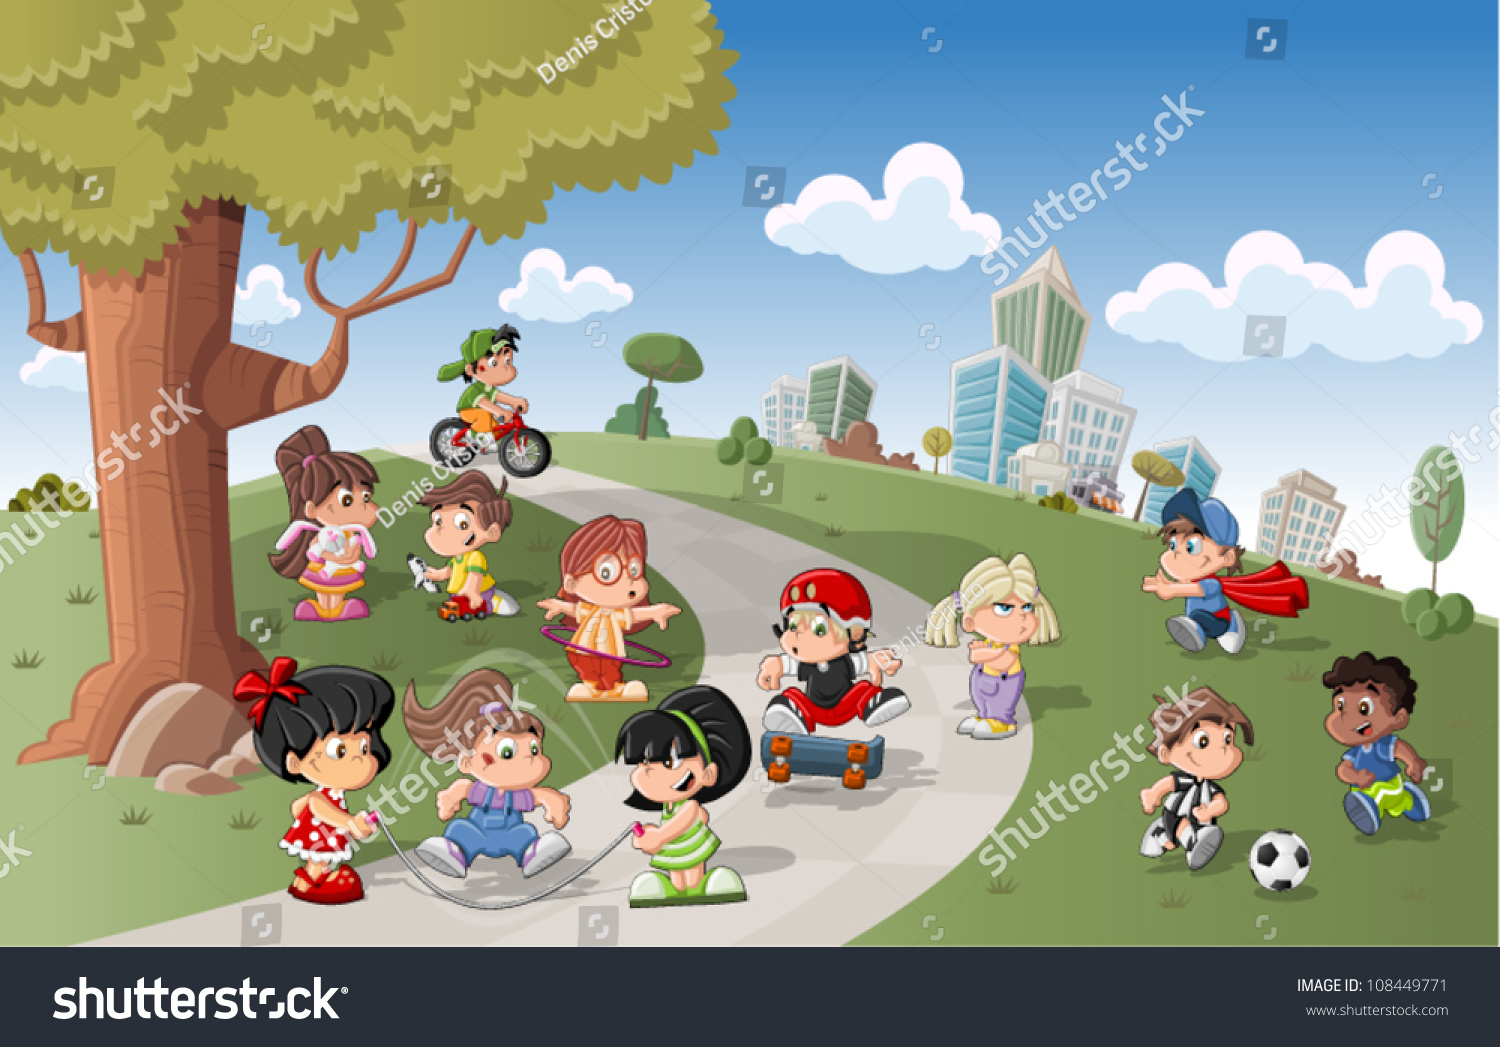 cute happy cartoon kids playing in green park 108449771 - Cartoon Picture For Kids